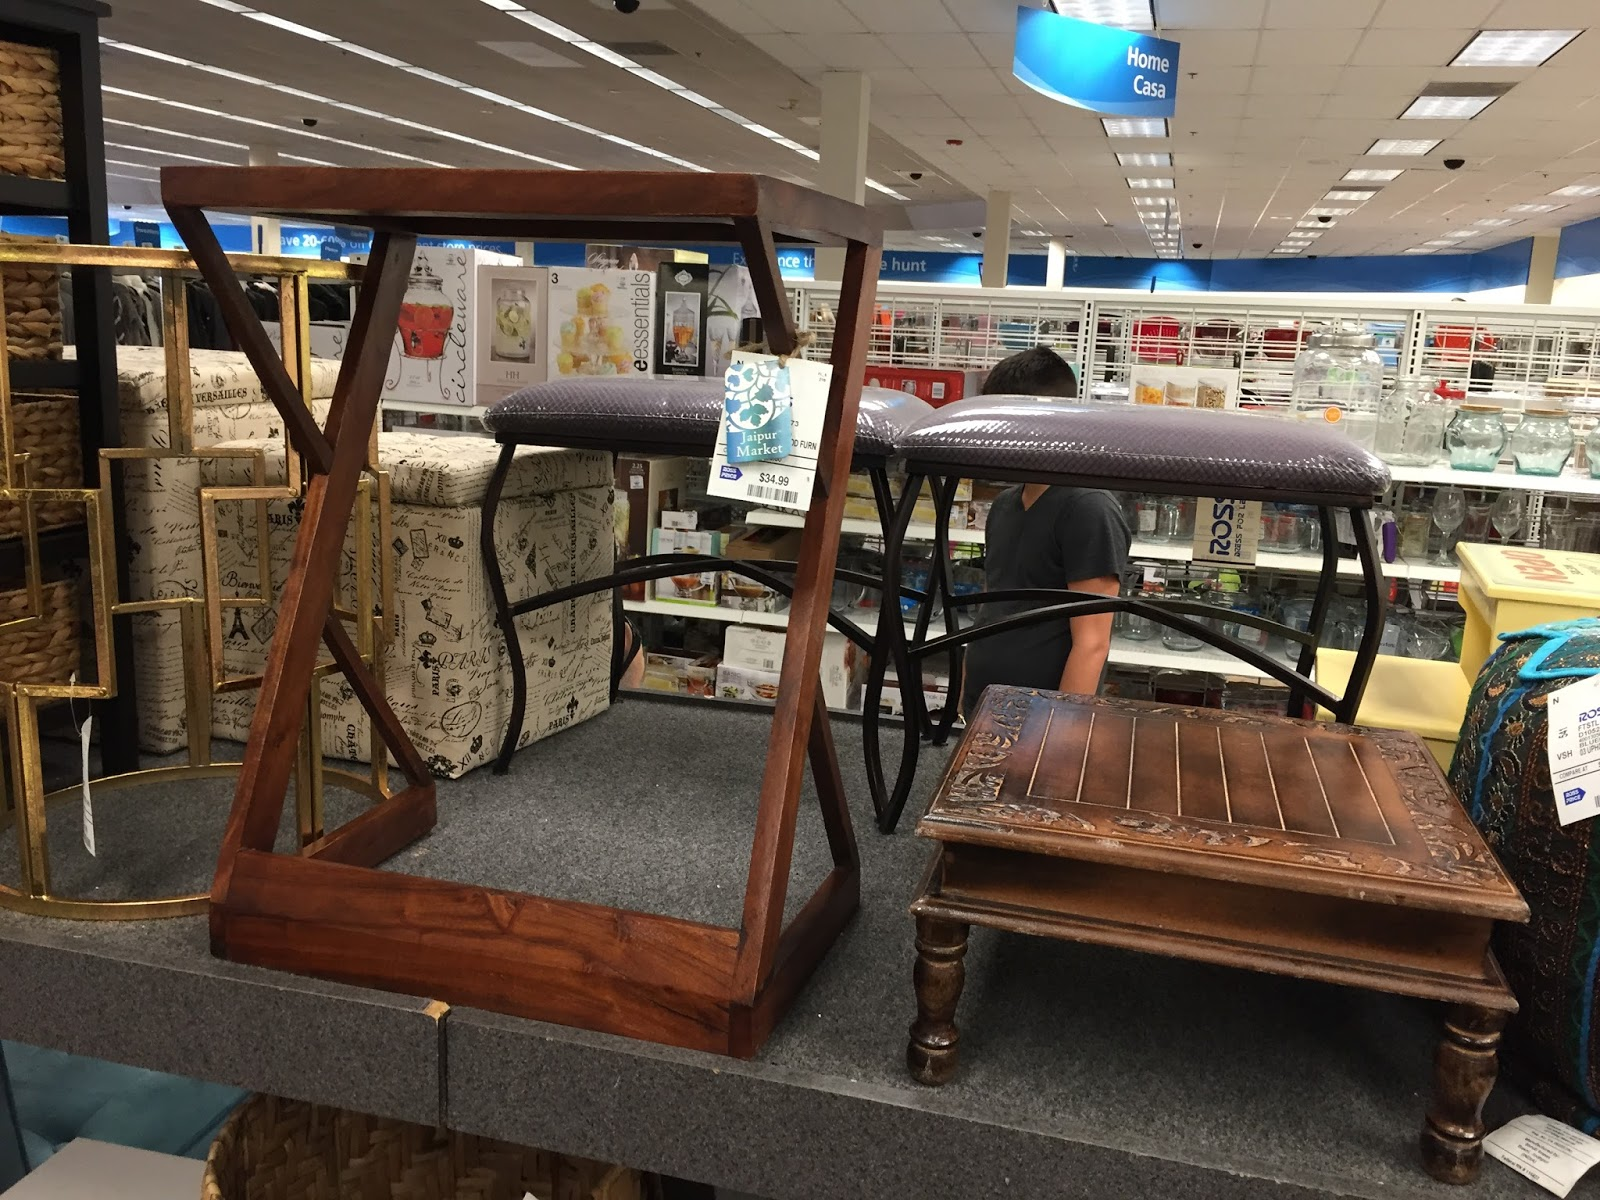 dining chairs at marshalls office chair casters for carpet inspire bohemia: home furniture and decor ross stores